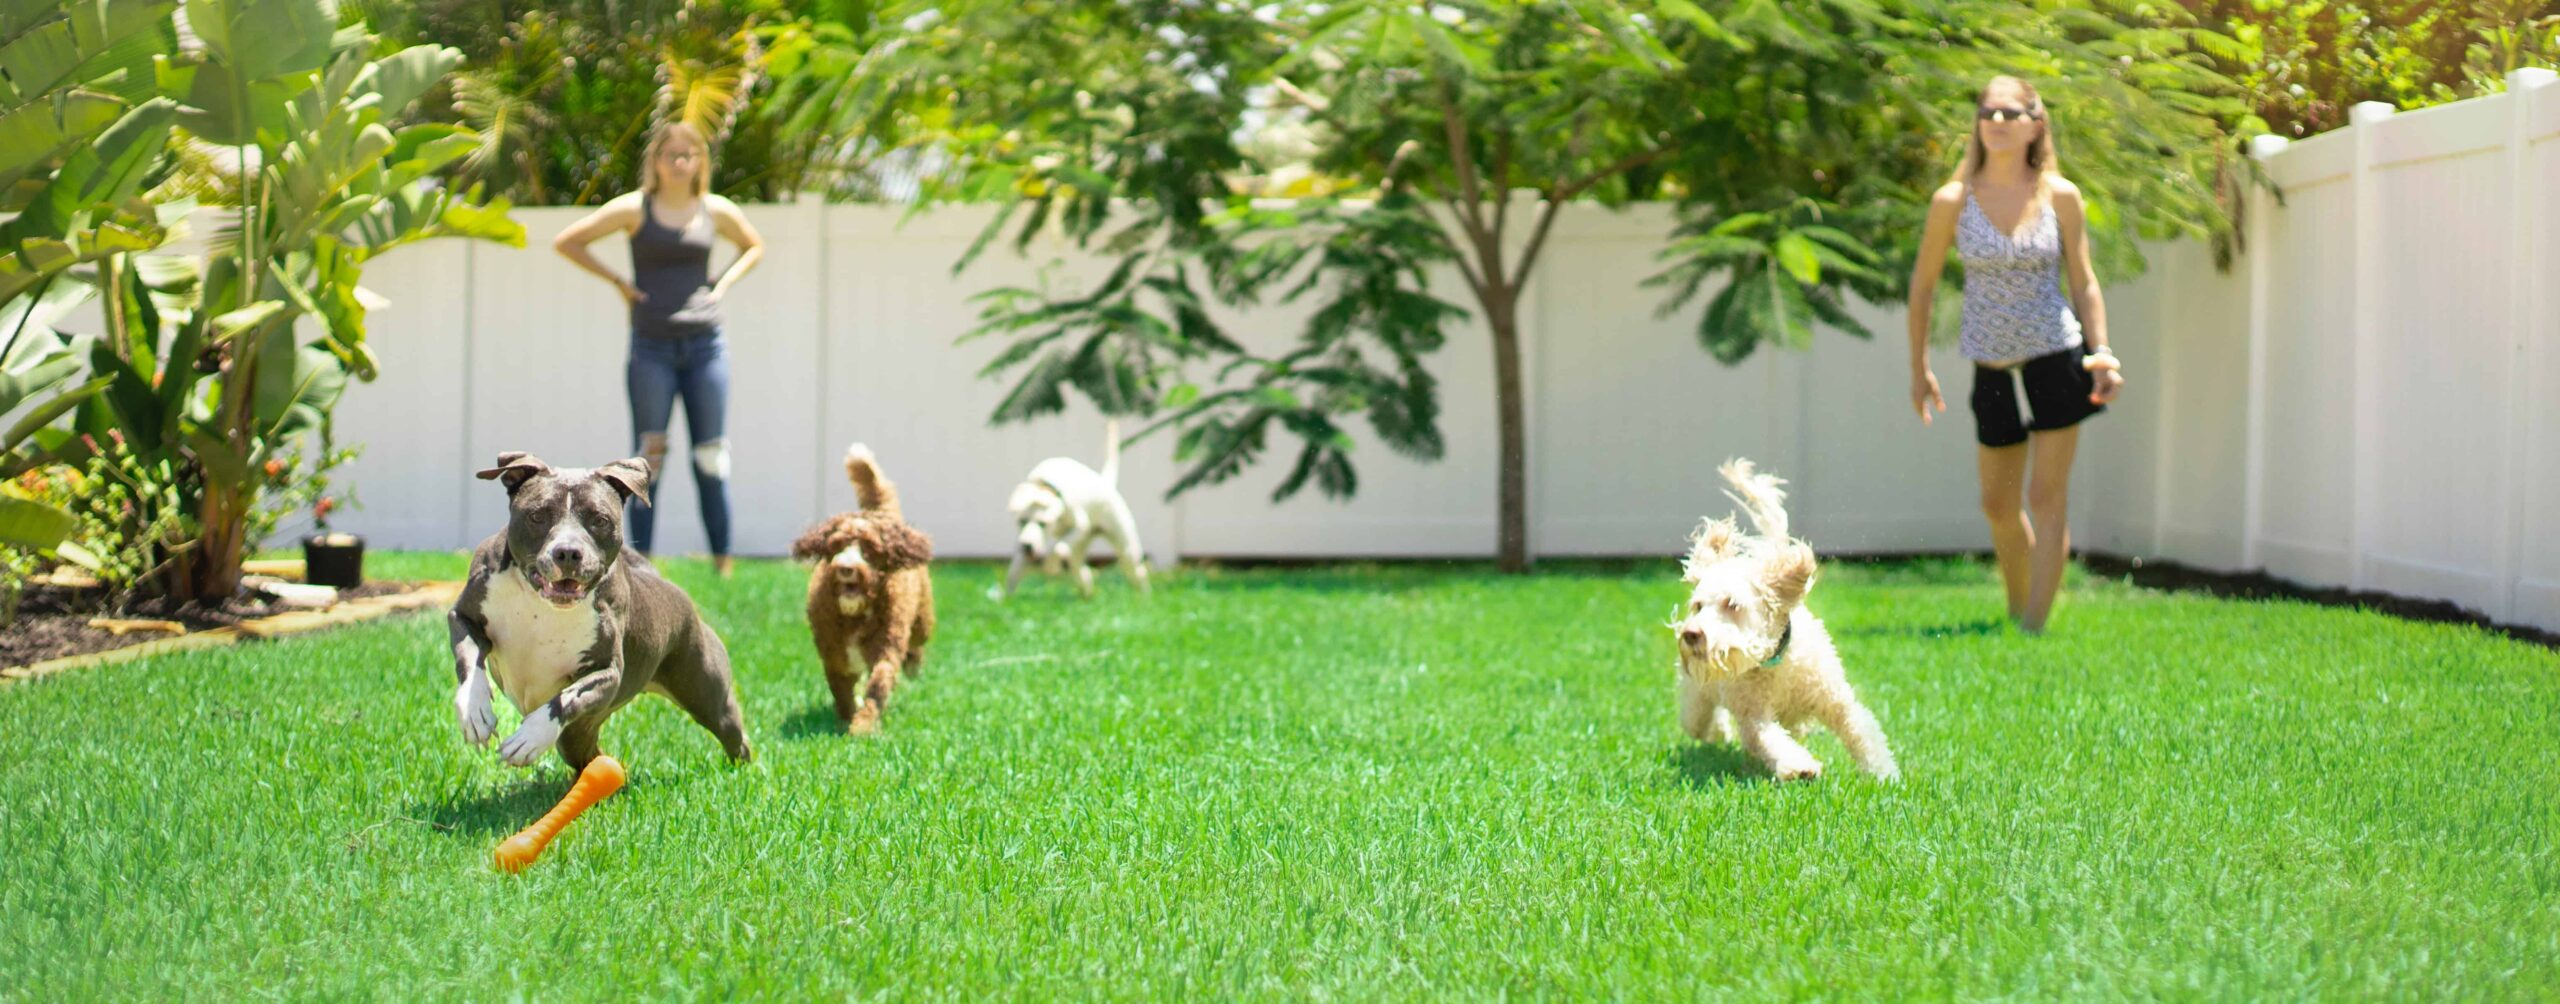 two adults play fetch with dogs in the backyard